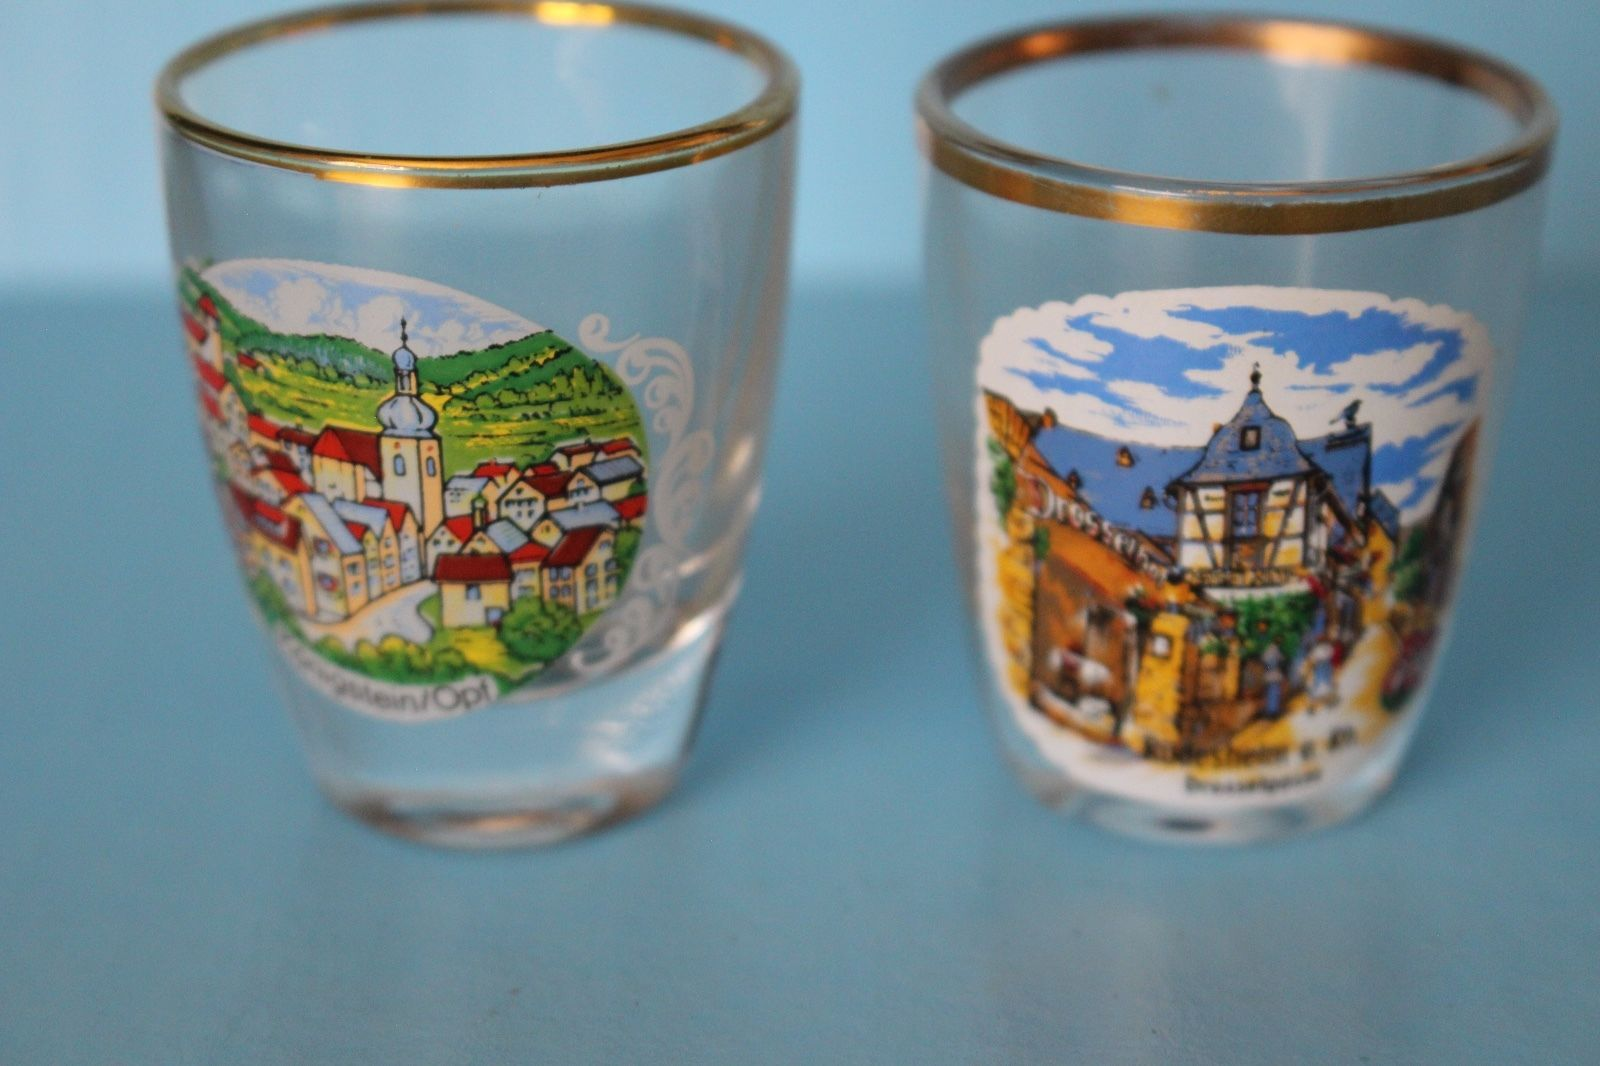 VINTAGE - GERMAN SHOT GLASSES GERMAN TOWNS, MOUNTAINS WITH GOLD TRIM